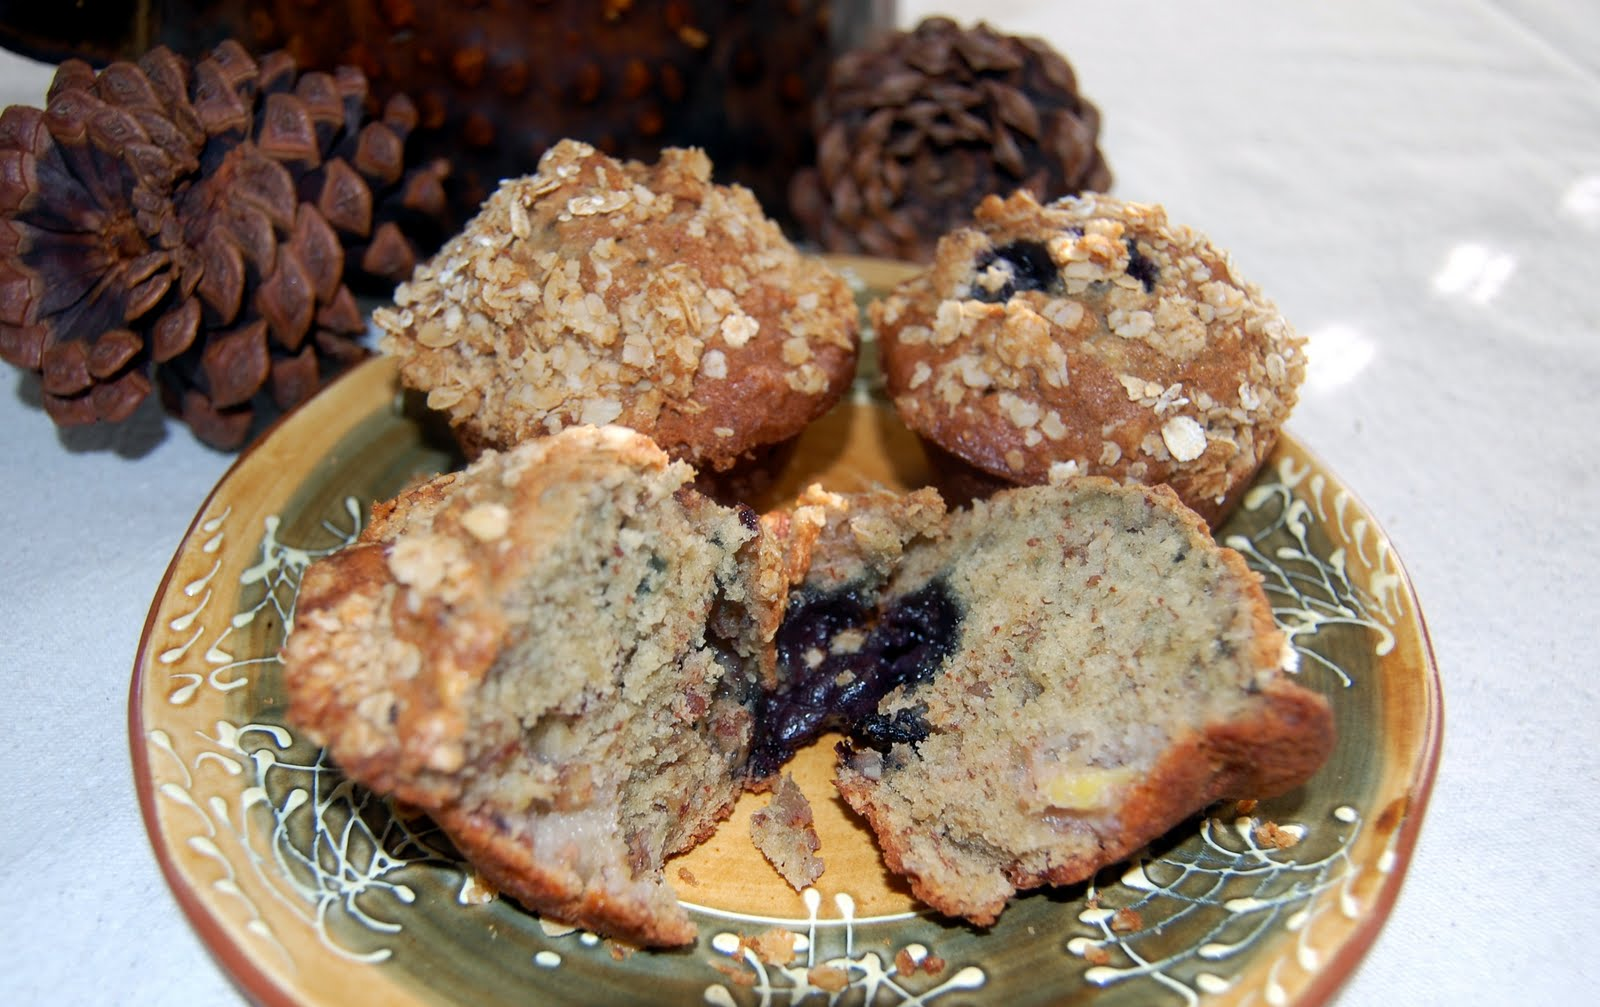 ... the Kitchen Blog: Banana Blueberry Pecan Muffins with Oatmeal Streusel